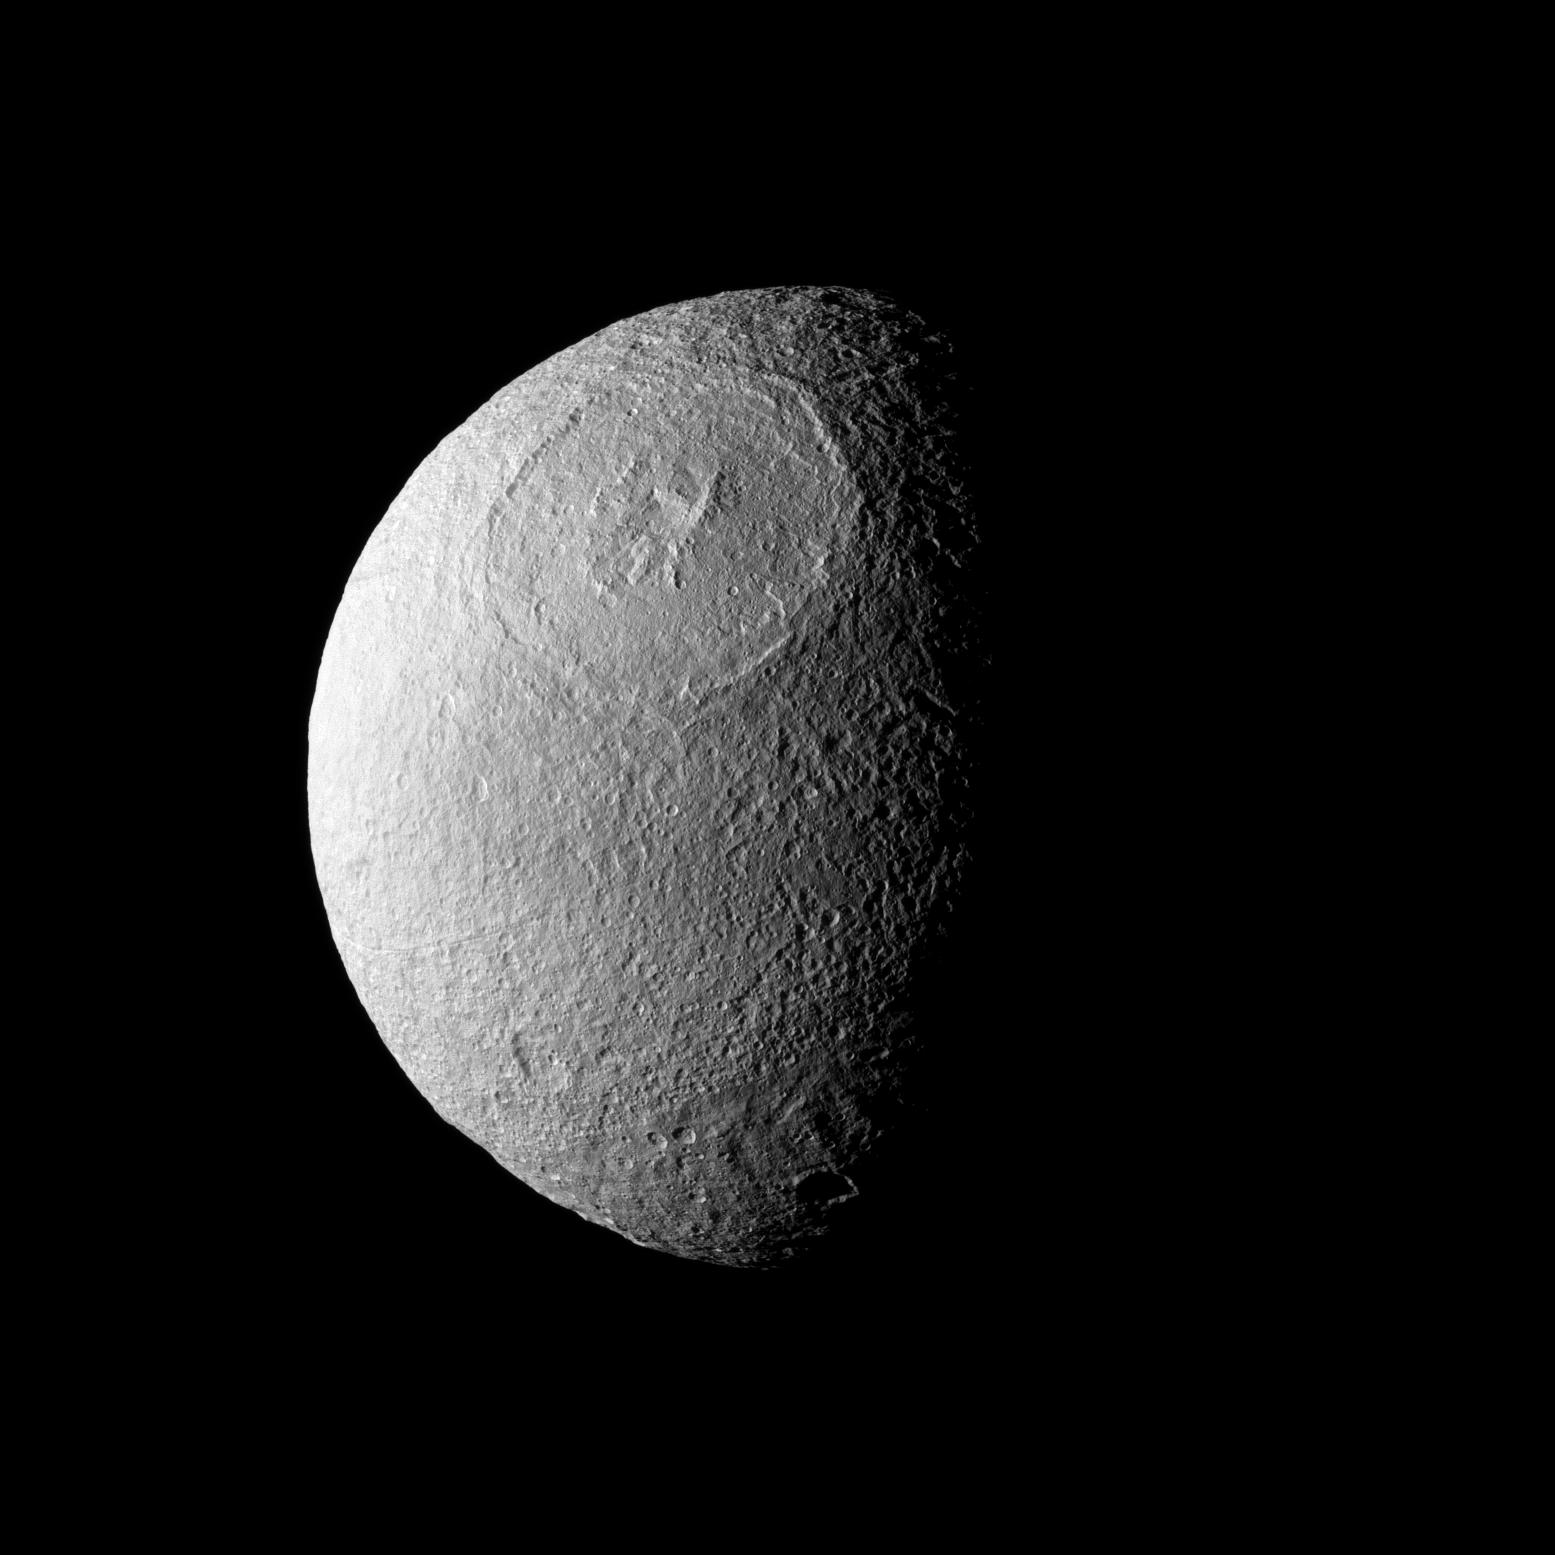 Odysseus Crater, with a size of epic proportions, stretches across a large northern expanse on Saturn's moon Tethys. Credit: NASA/JPL/Space Science Institute